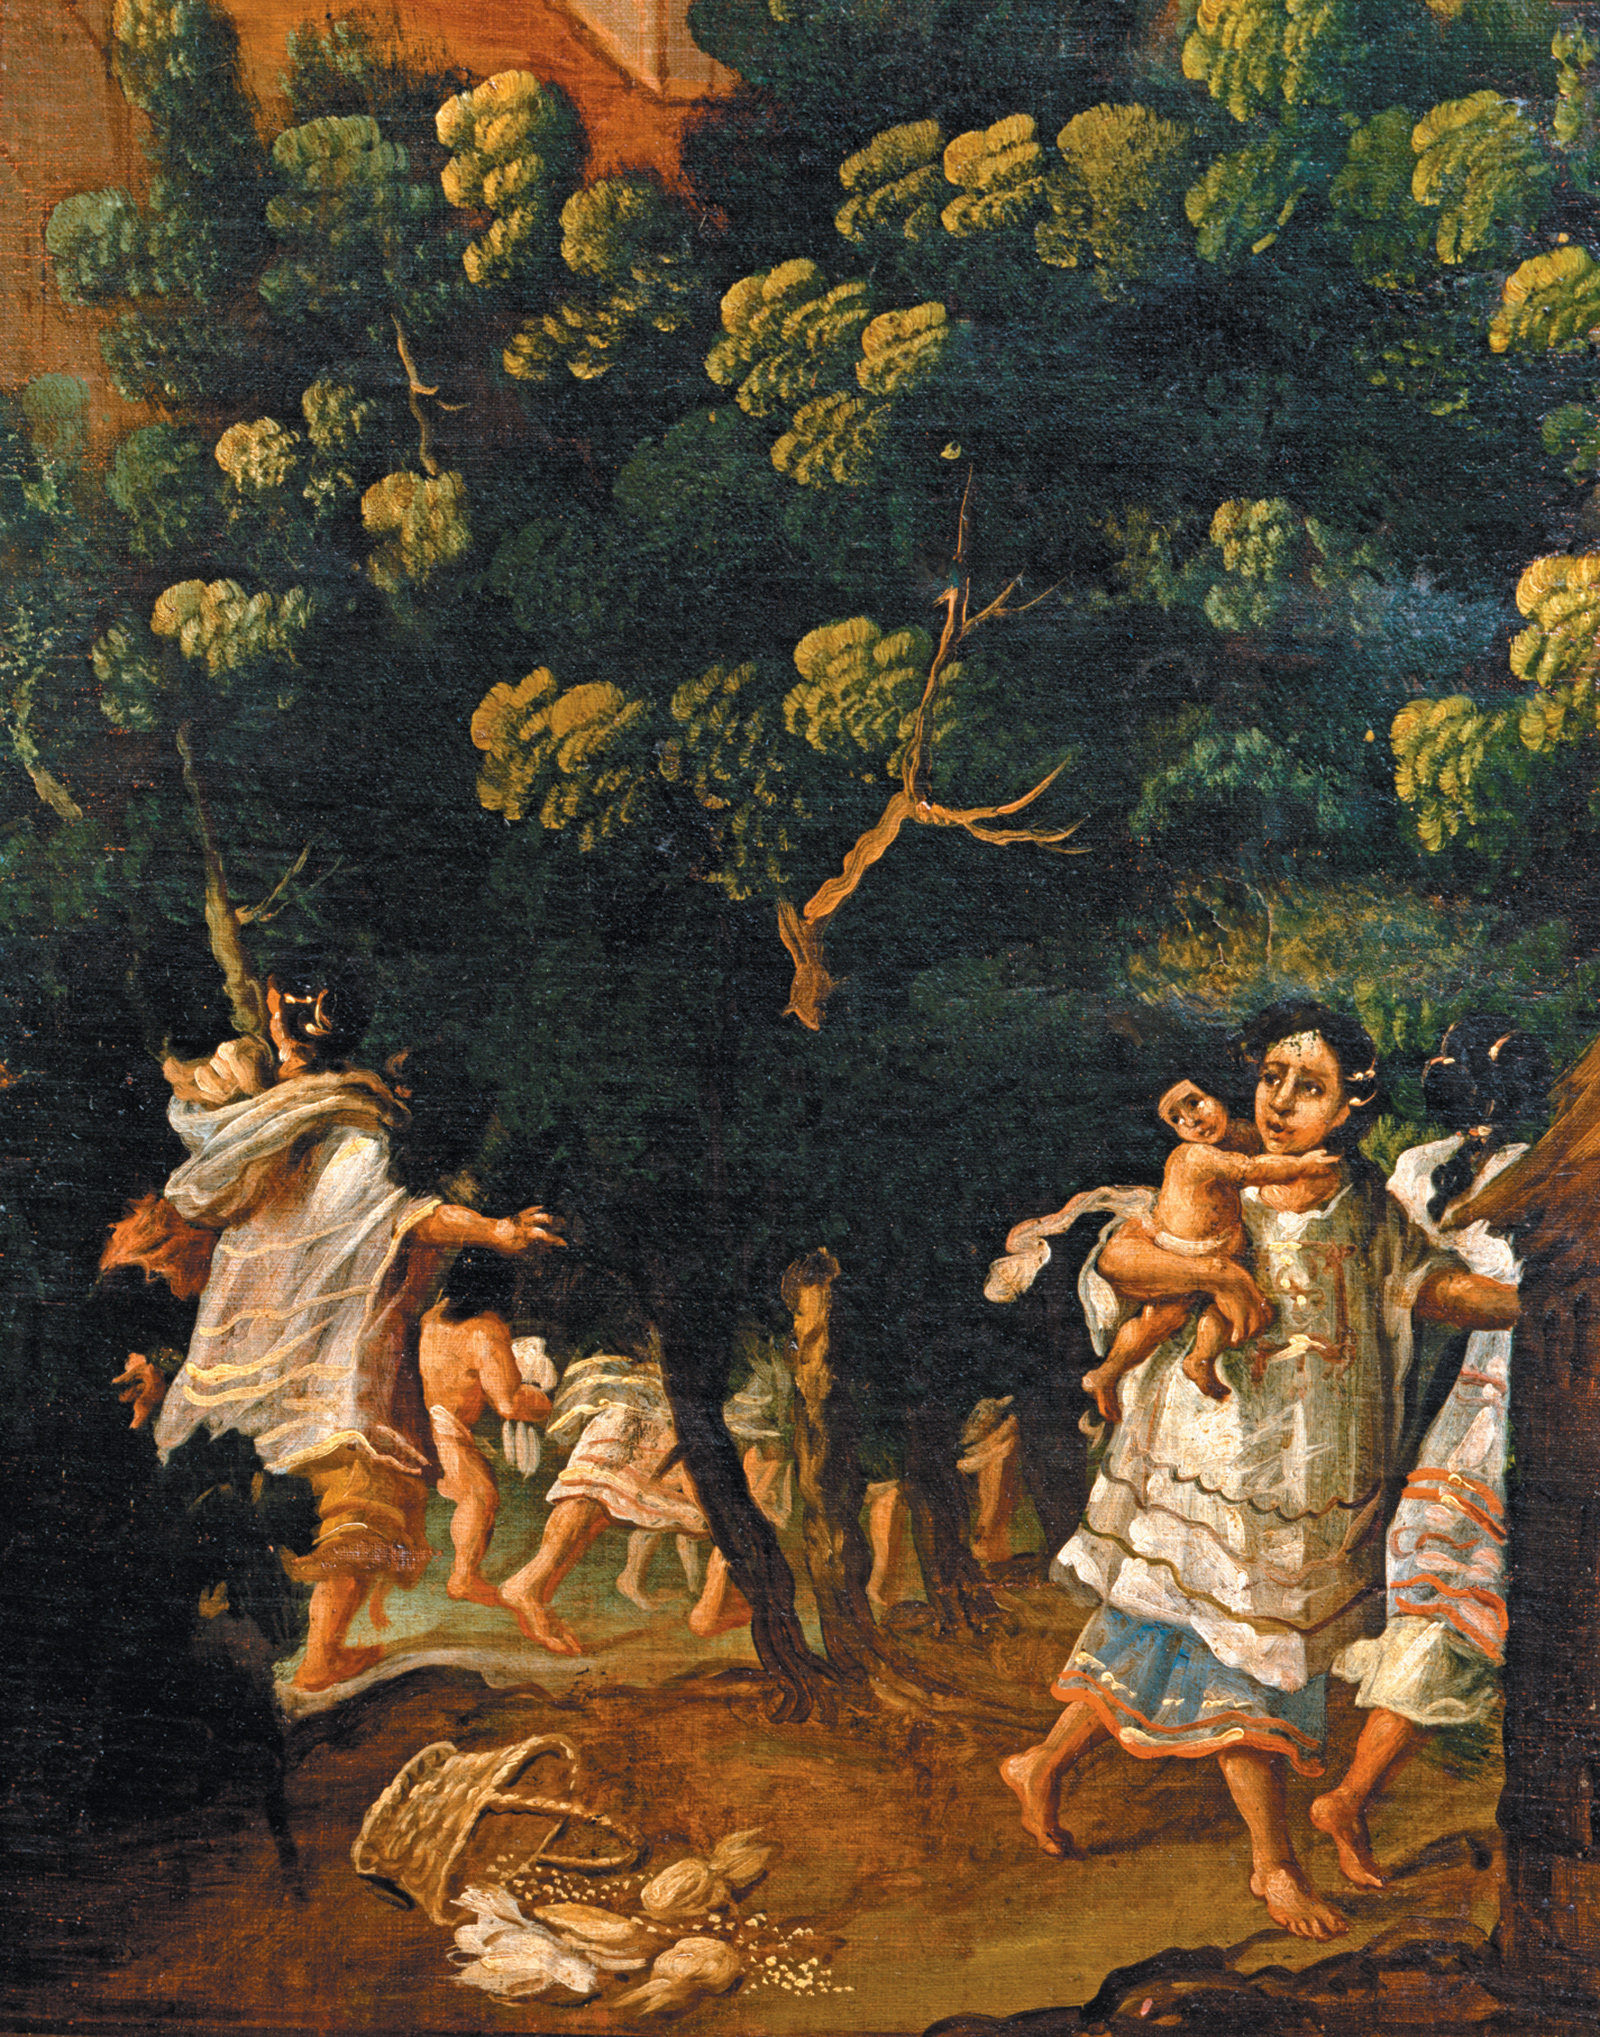 'Aztec women and children fleeing from the Spaniards'; anonymous painting from seventeenth-century colonial Mexico